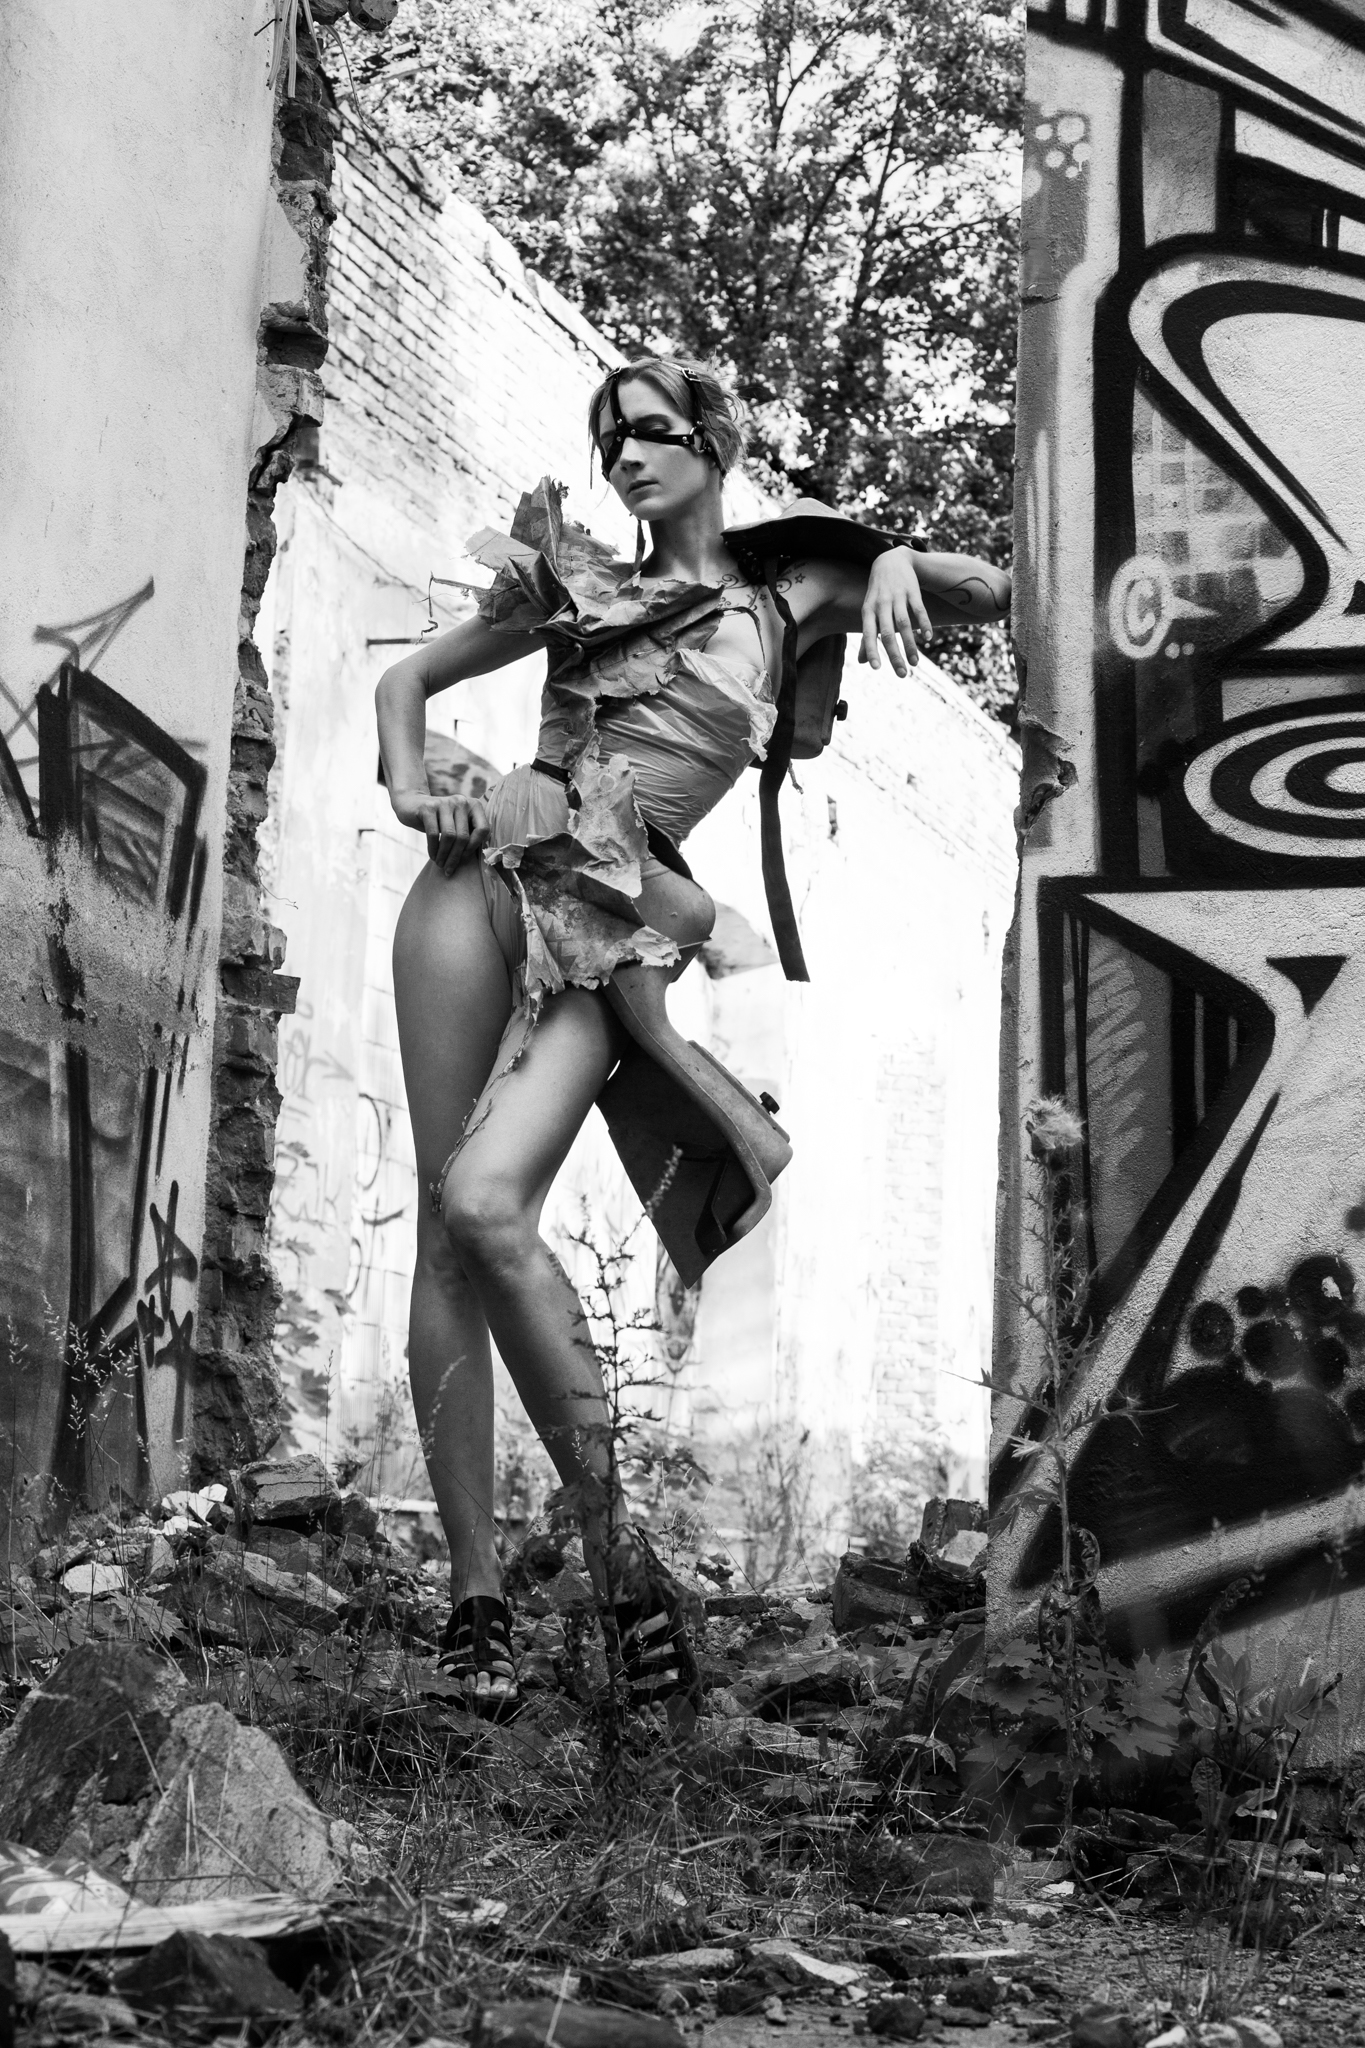 Roxx, shot by Redd, at an abandoned factory in Lodz, Poland, wearing a garment constructed from eco-plastic trash bags, decaying shopping bag, and a child's safety seat sourced on site.